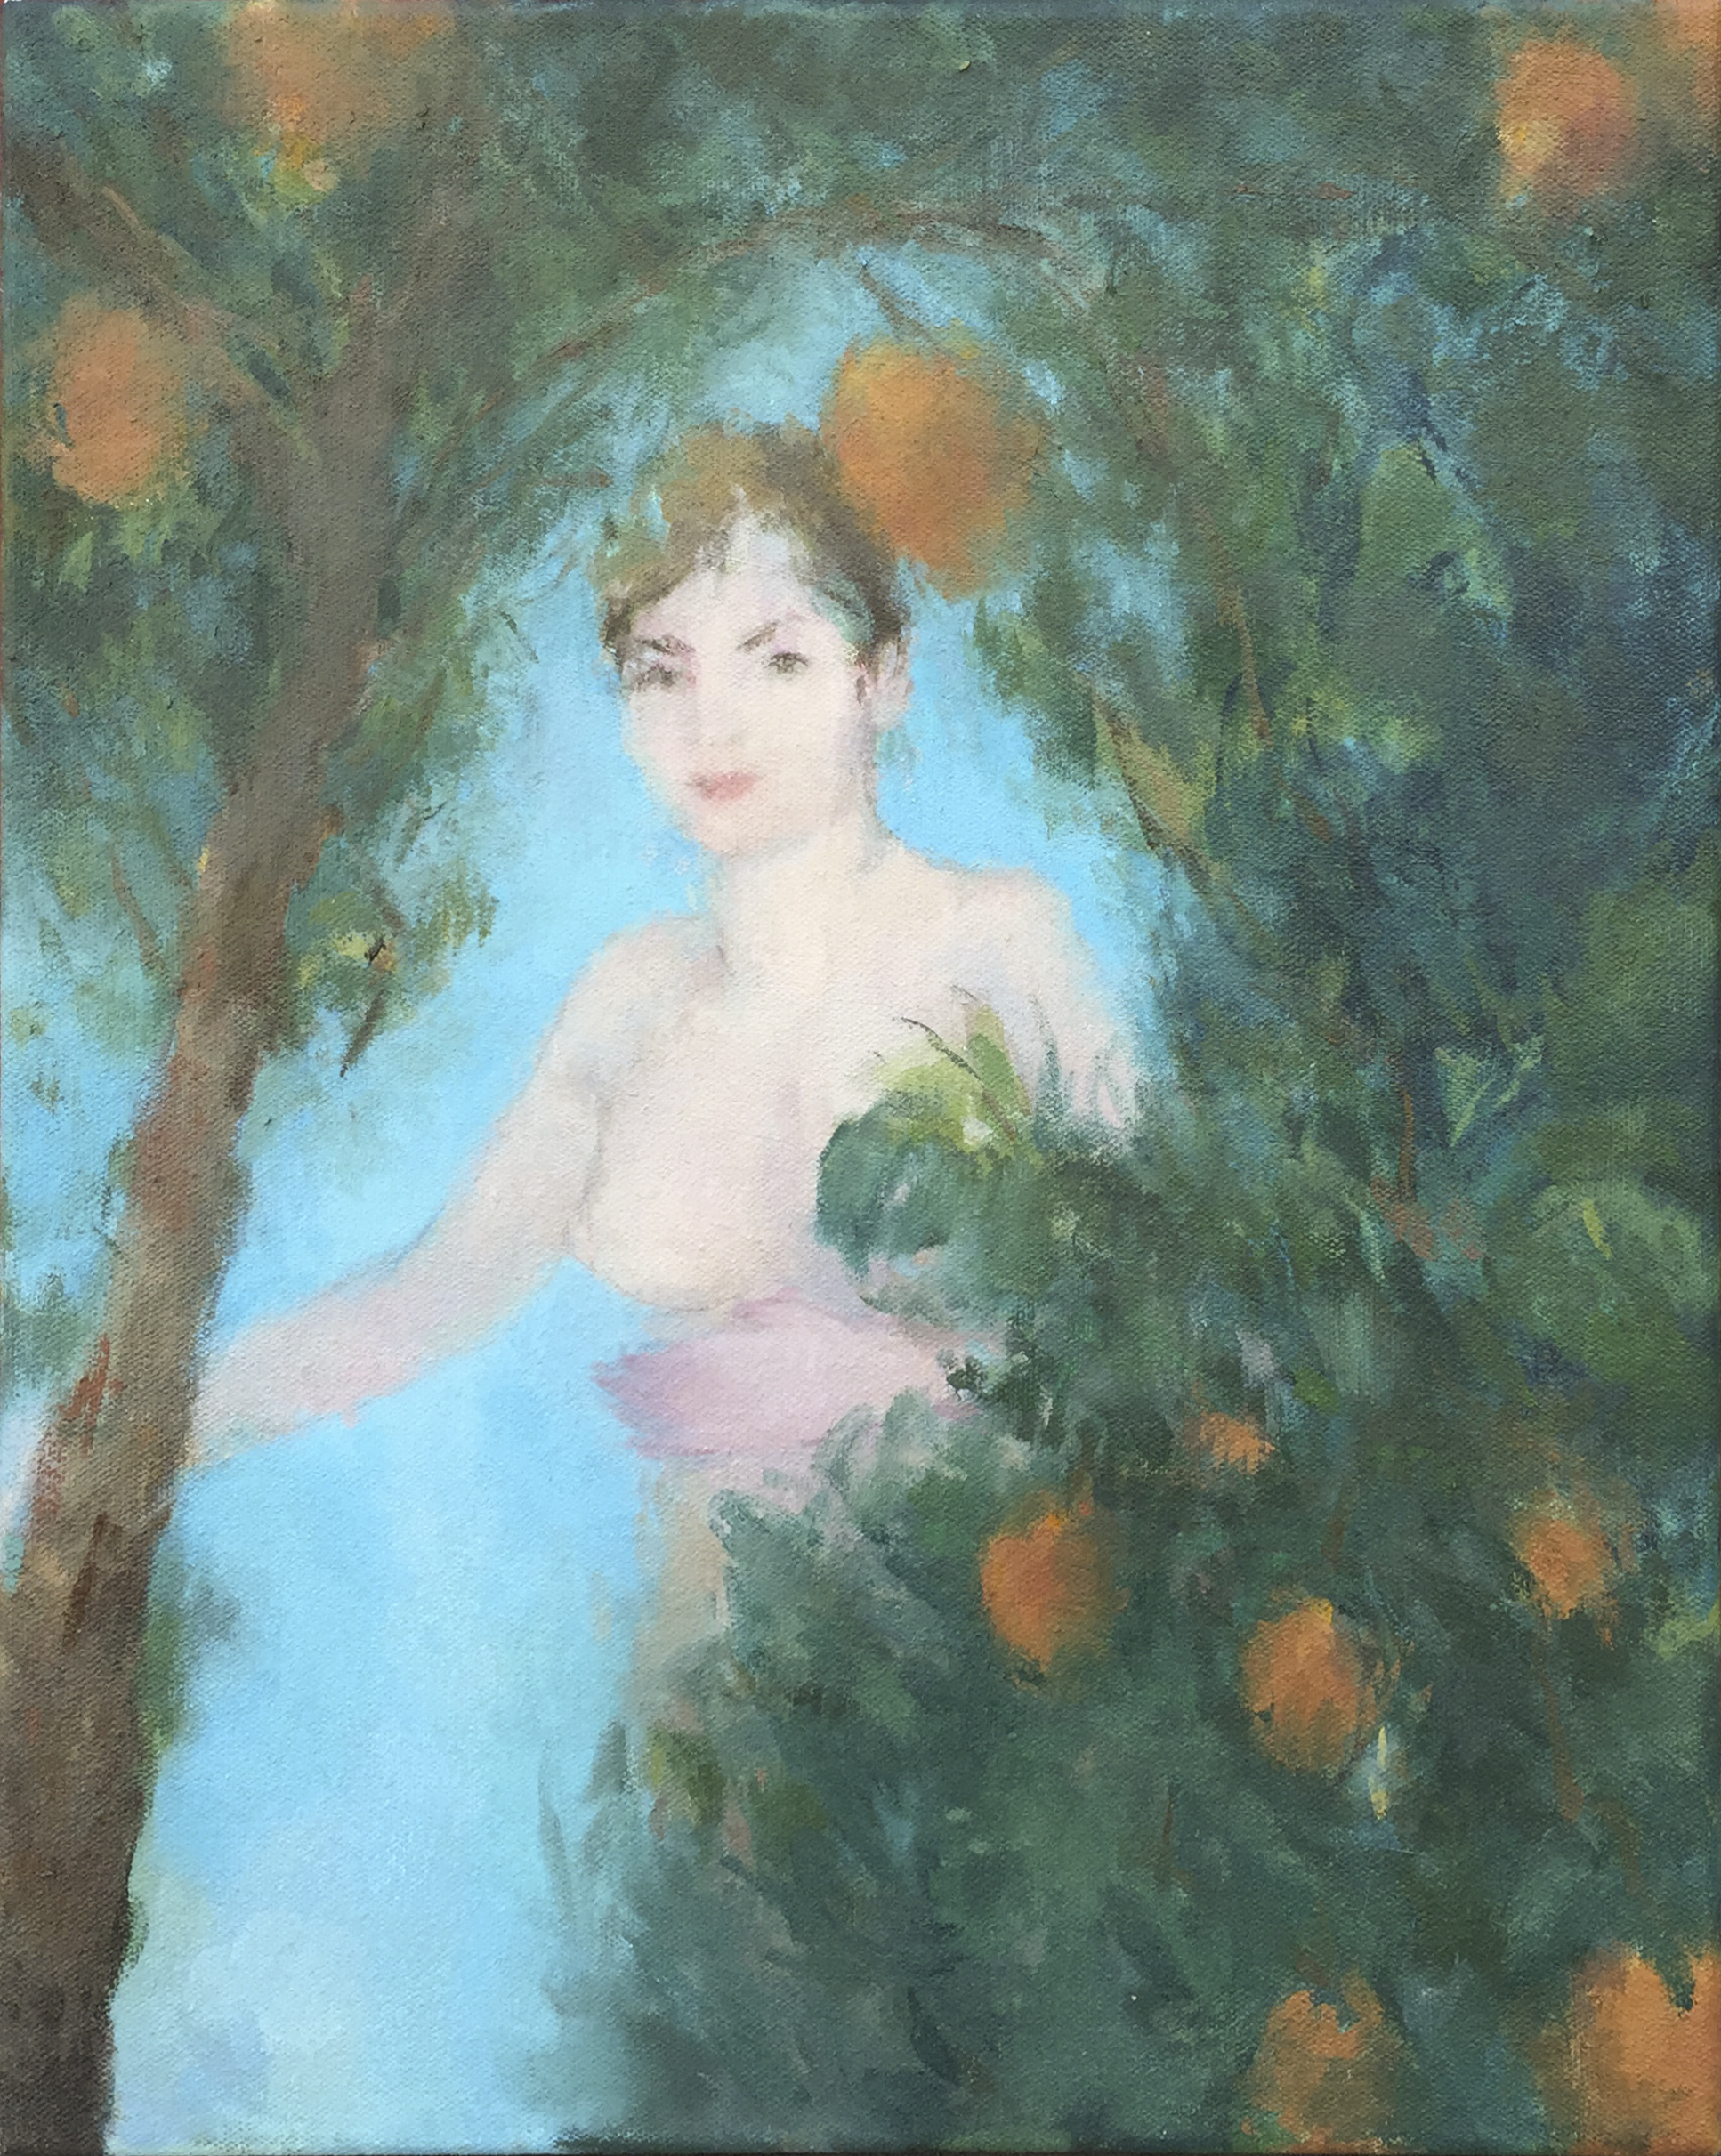 "Joan in the Garden  oil on canvas 14x18"" 2015  private collection CA"